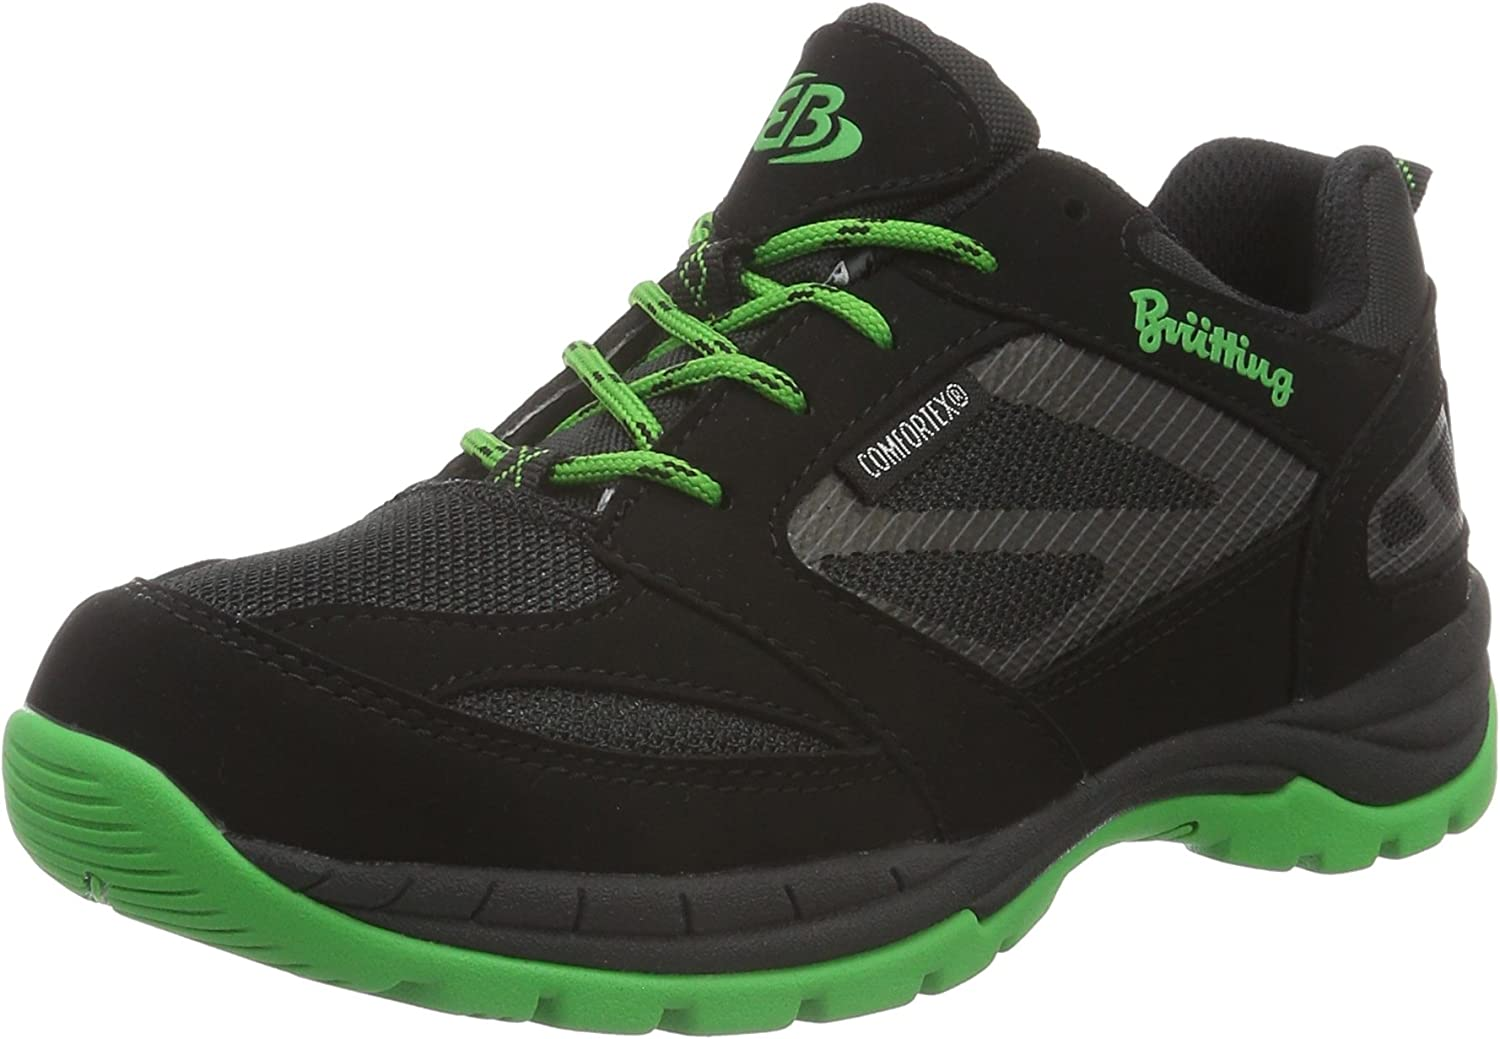 Bruetting Adults' Baltimore High Rise Hiking Boots